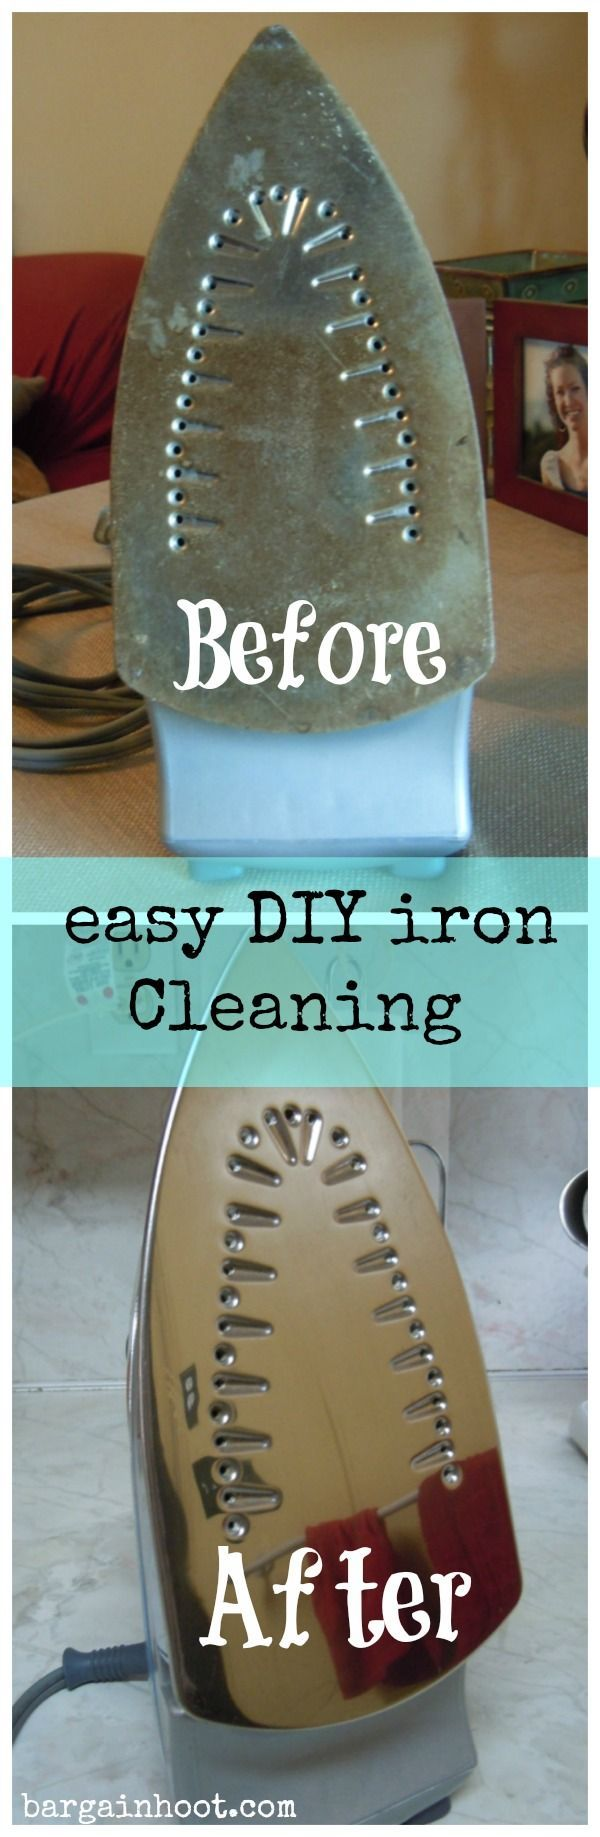 How to clean your iron | DIY | Home making